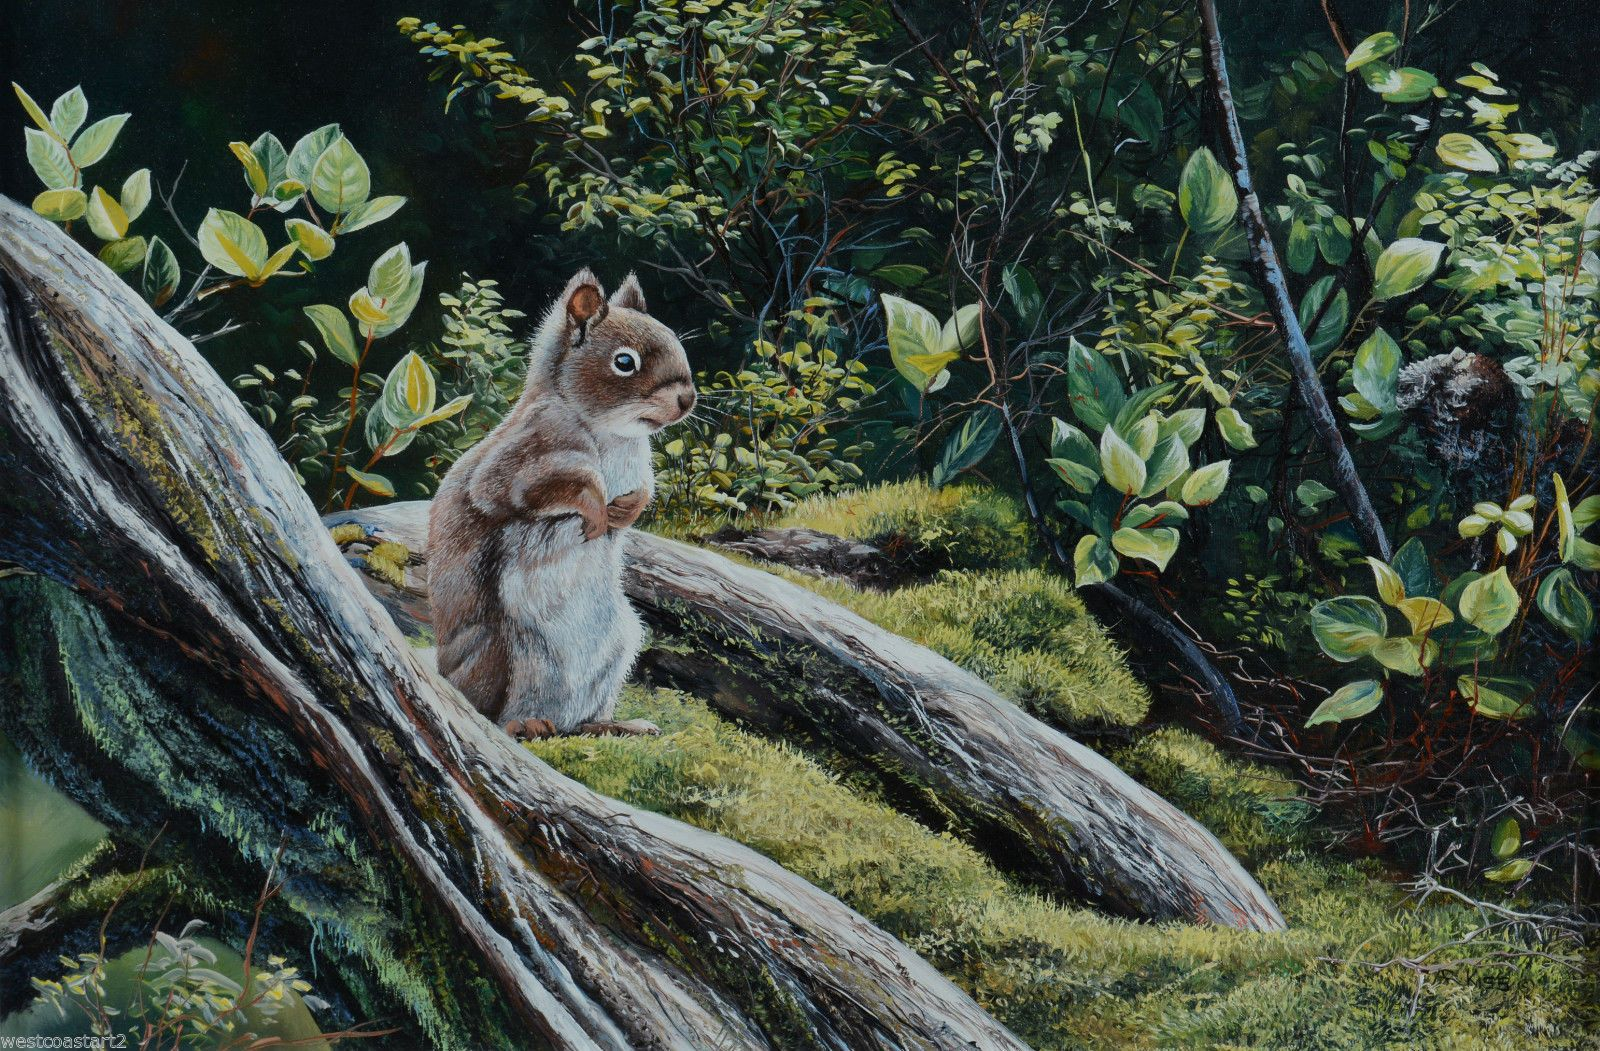 Andrew kiss original painting squirrel in forest canadian